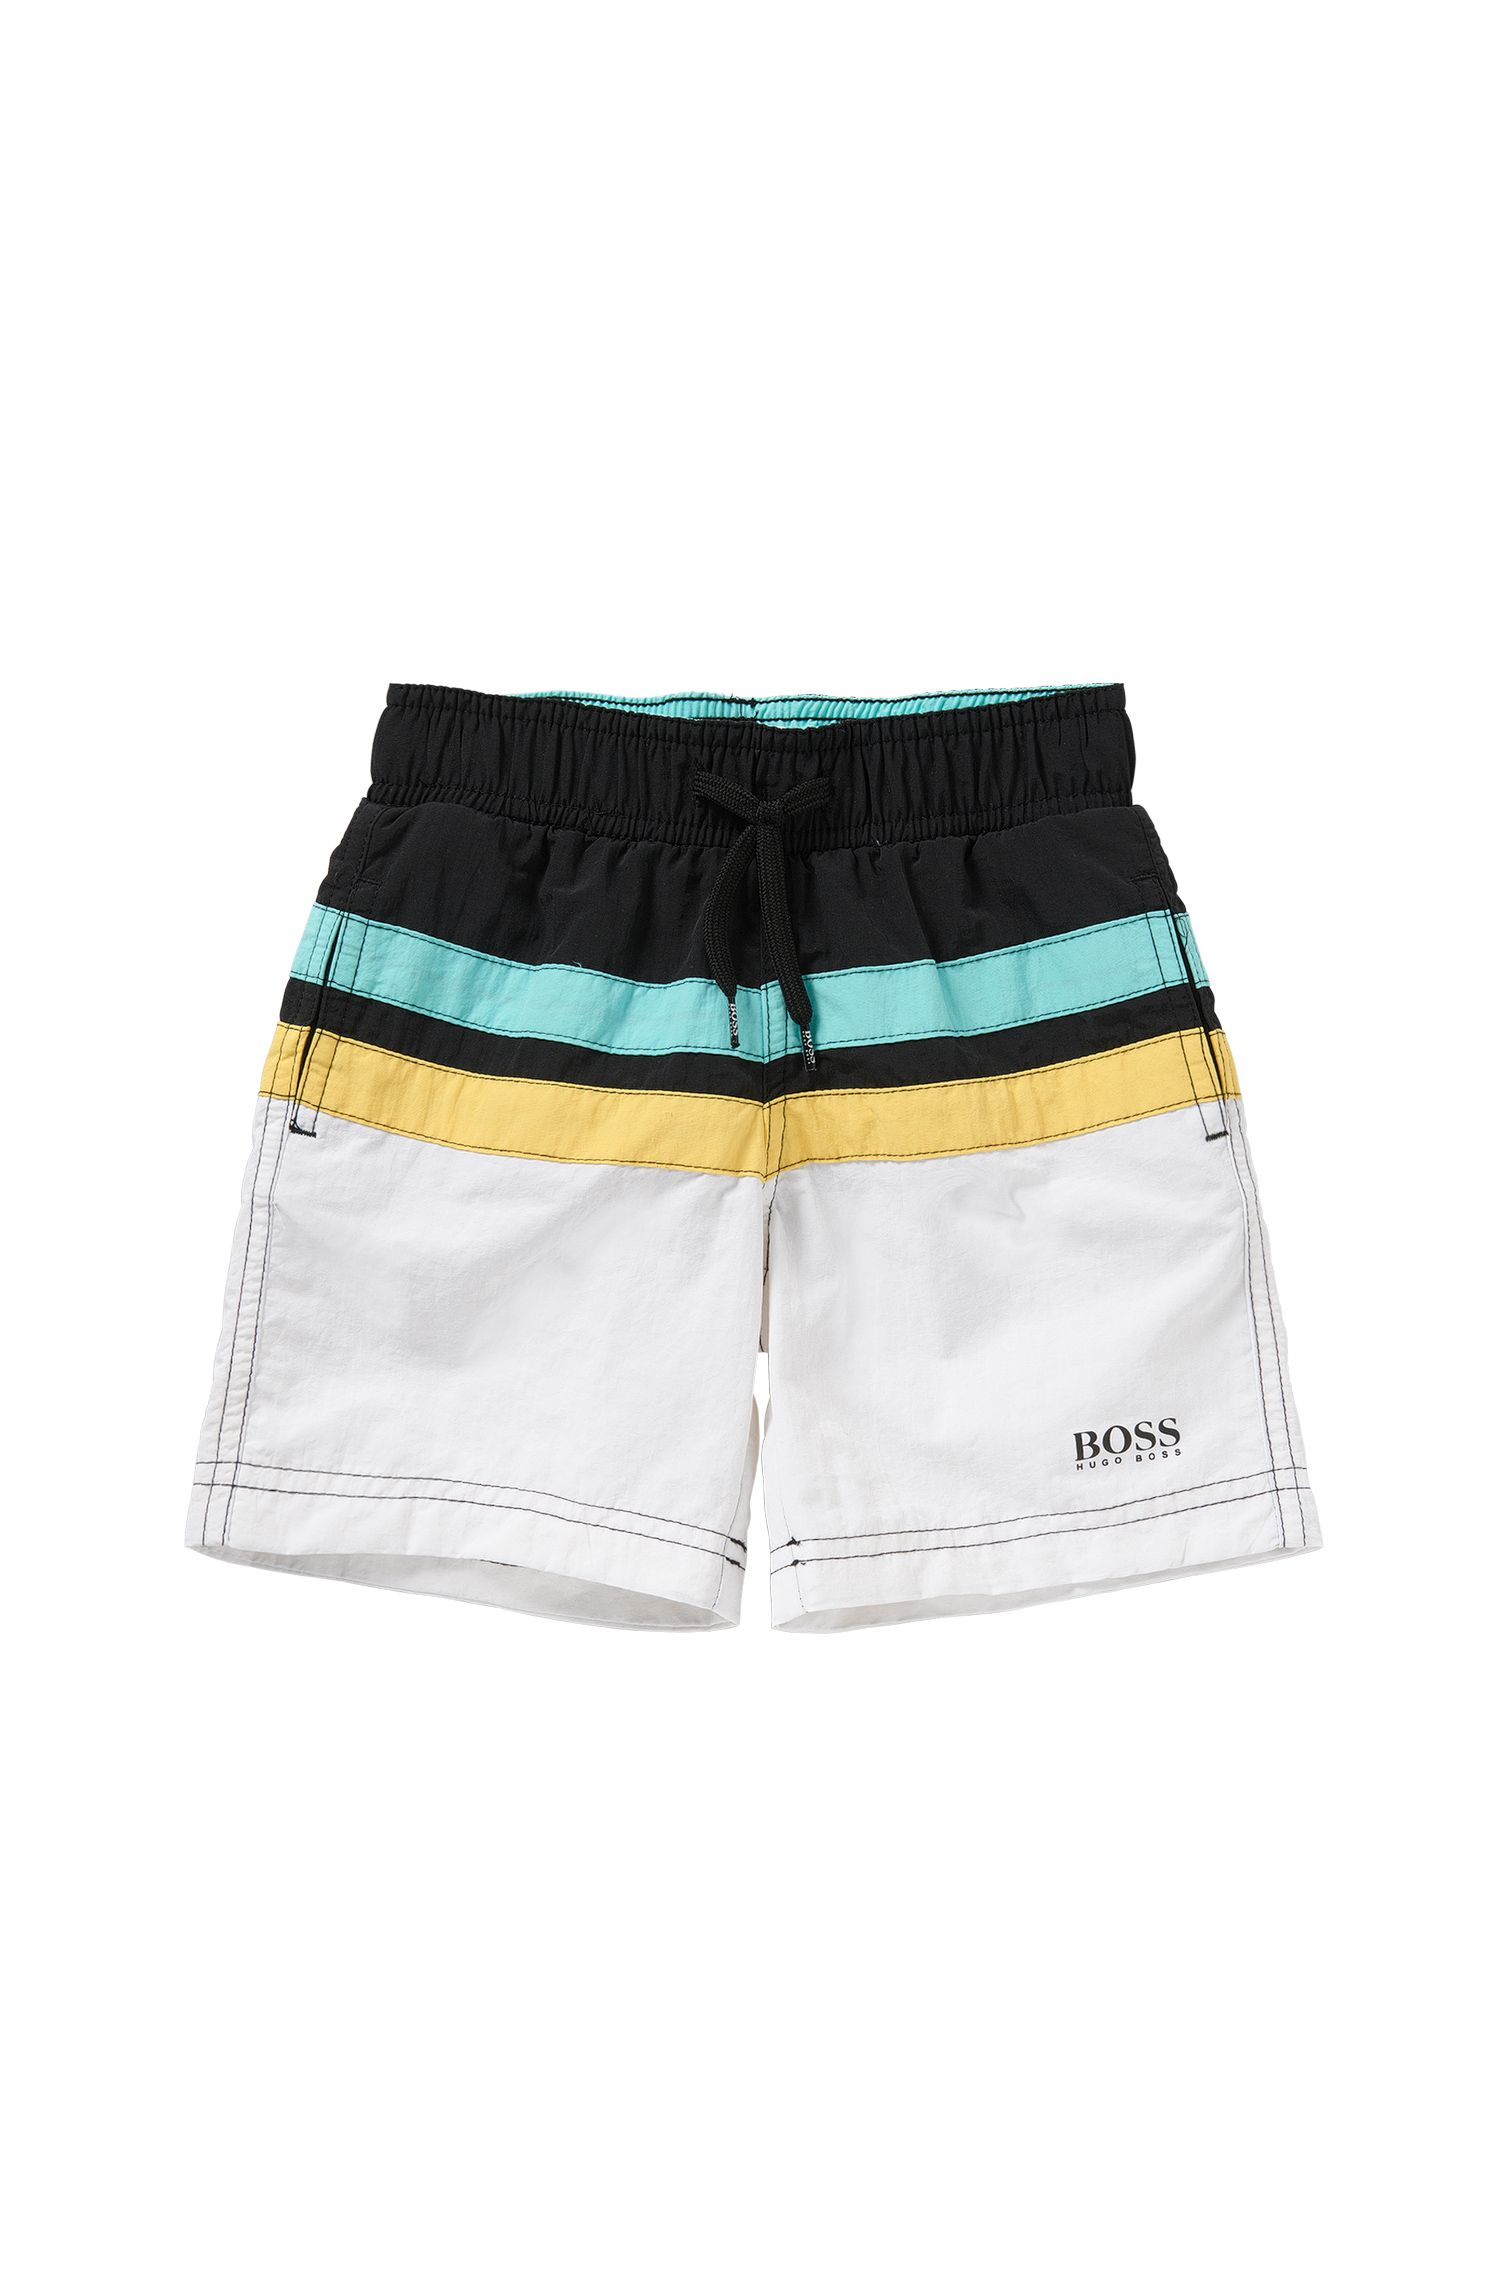 'J24404' | Boys Stretch Cotton Swim Trunks